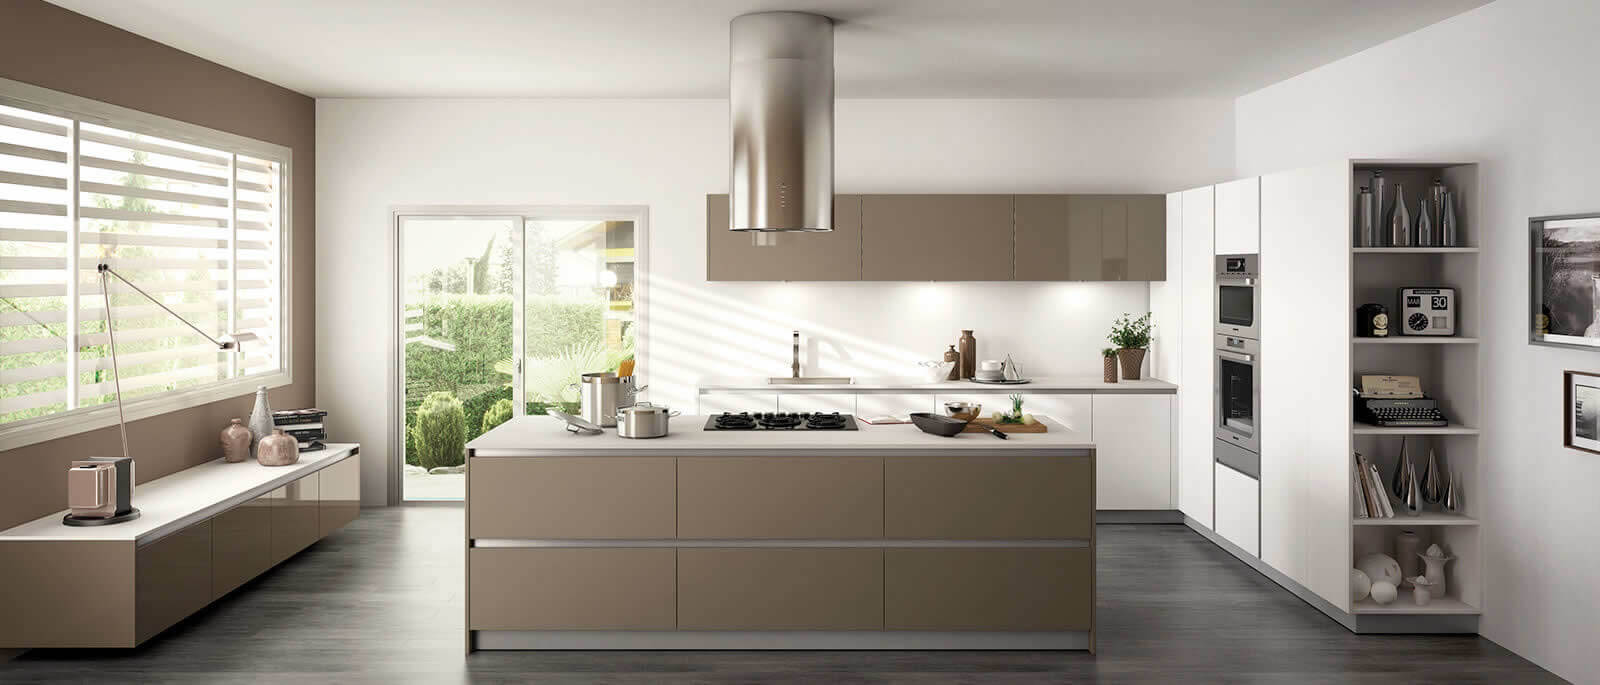 Pictures Of Contemporary Kitchens Kitchens Nolan Kitchens Contemporary Kitchens Fitted Kitchens